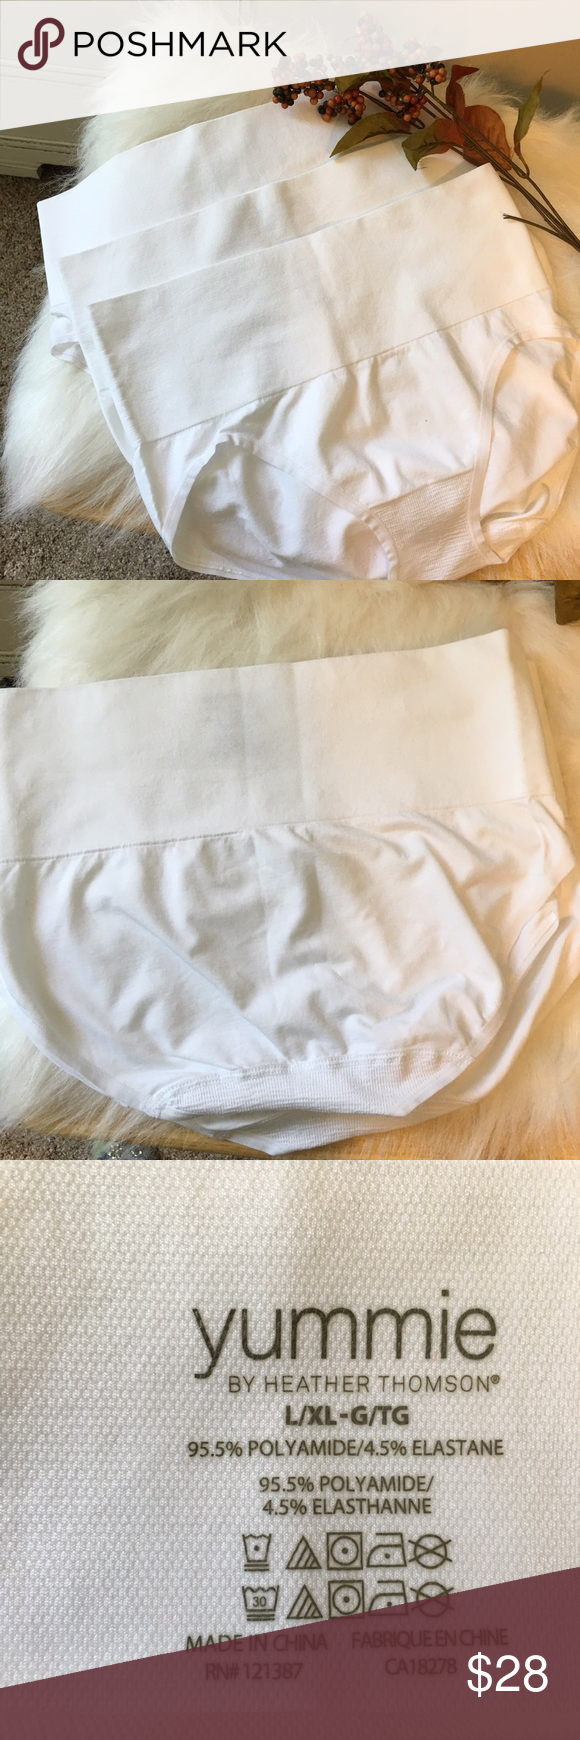 Brand New 3 Pack Yummie Panties Wonderful Shapewear by Yummie.  Get that smooth finished look in any outfit.  The wide waistband provides great tummy support.  Whittle your middle and lift that buttocks  Yummie Intimates & Sleepwear Shapewear